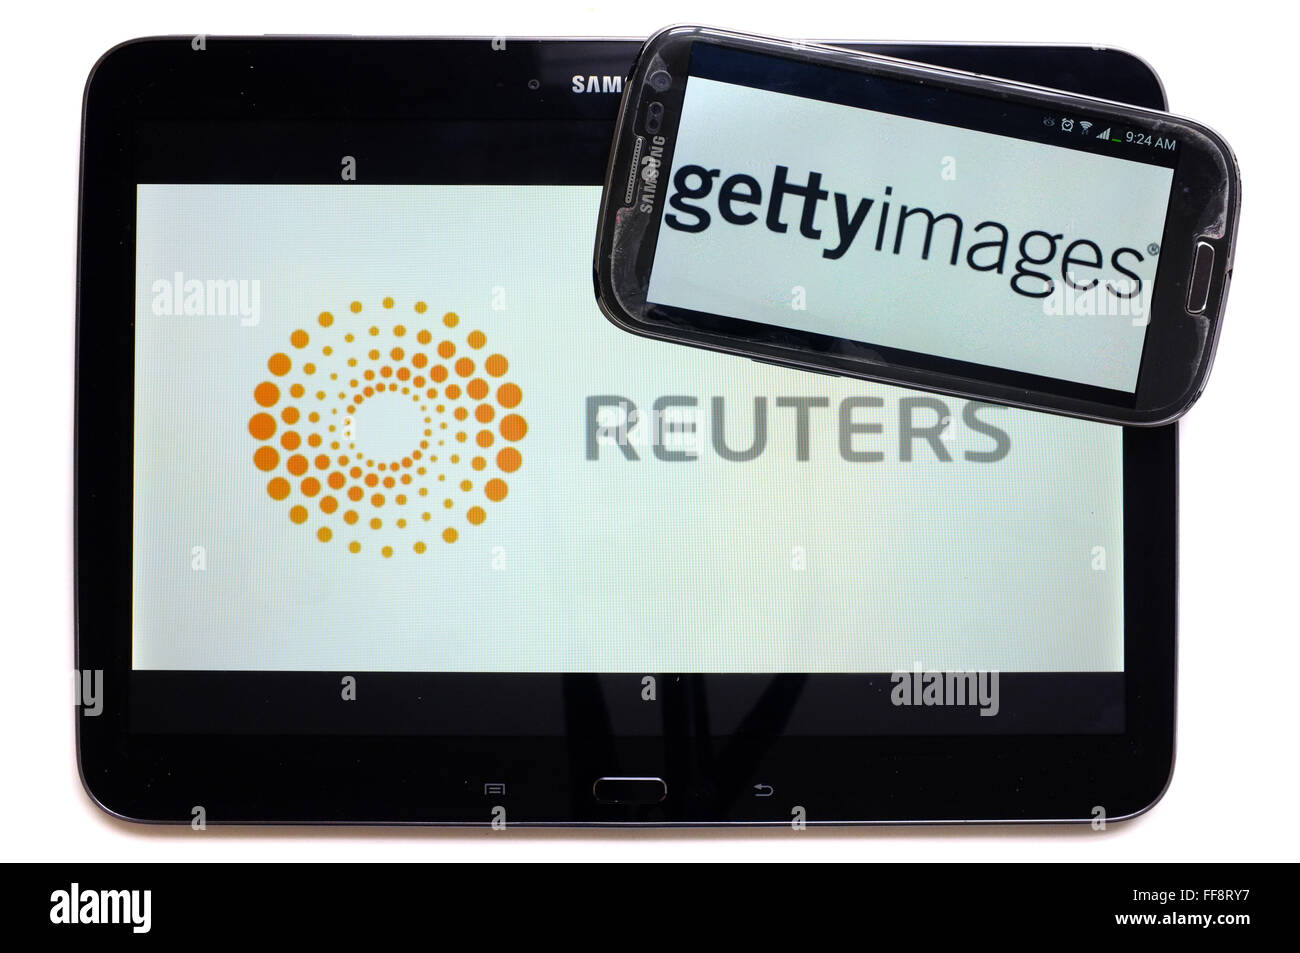 The news agencies getty images and Reuters on the screens of a tablet and a smartphone photographed against a white - Stock Image